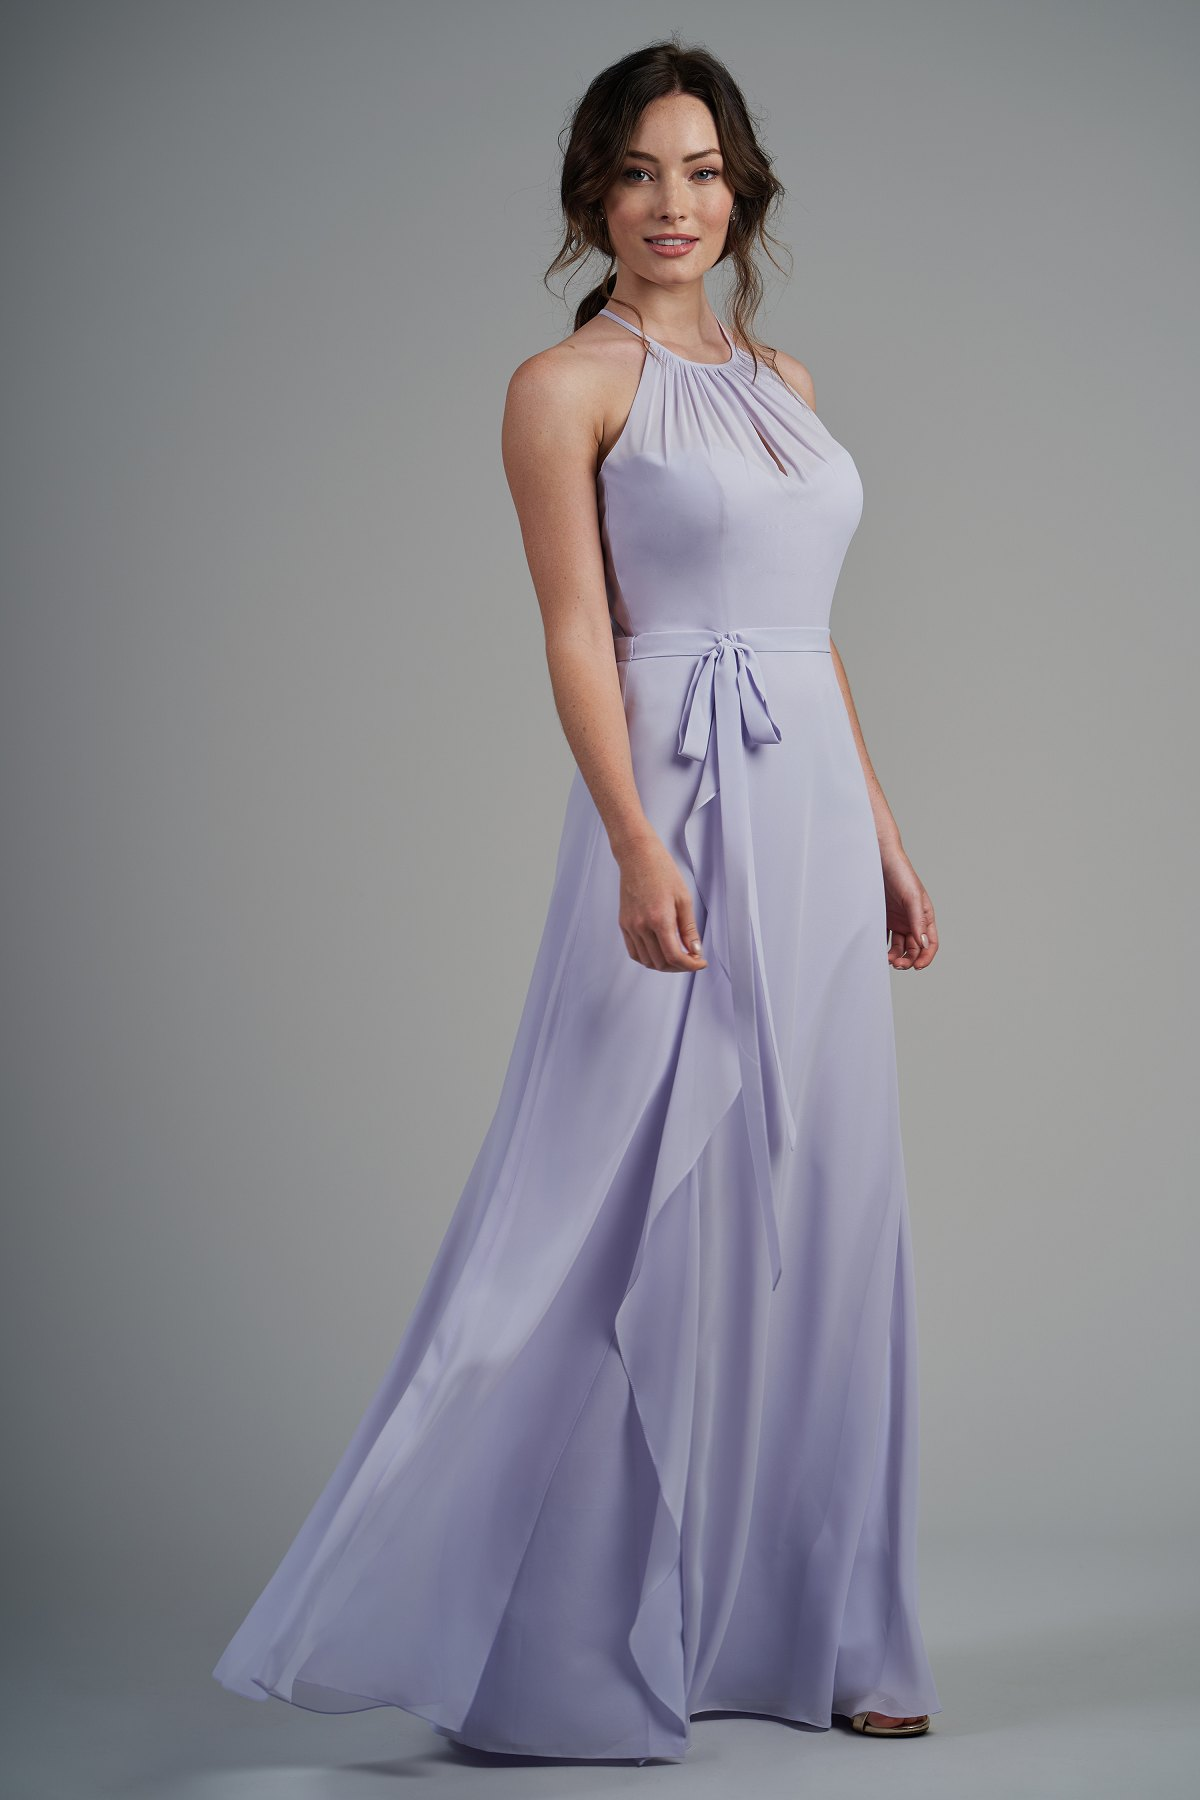 33e87afda4f B213005 Poly Chiffon Long Bridesmaid Dress with Jewel Neckline